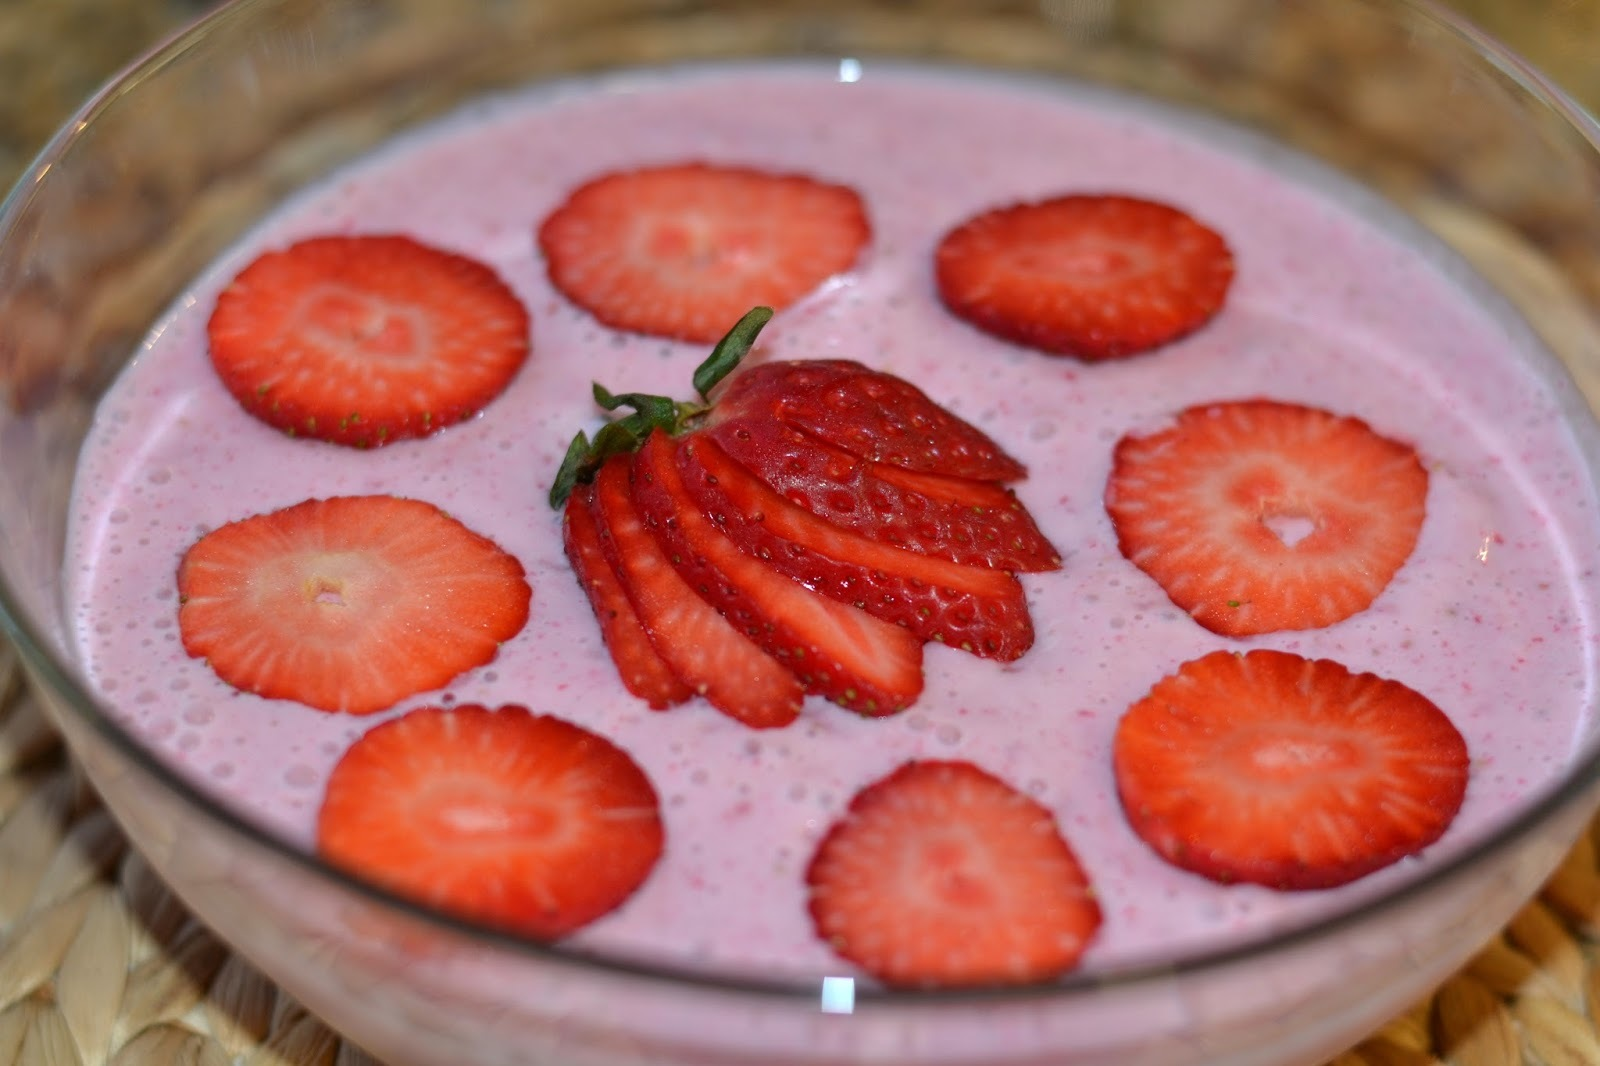 Mousse de Morango [Strawberry Mousse]